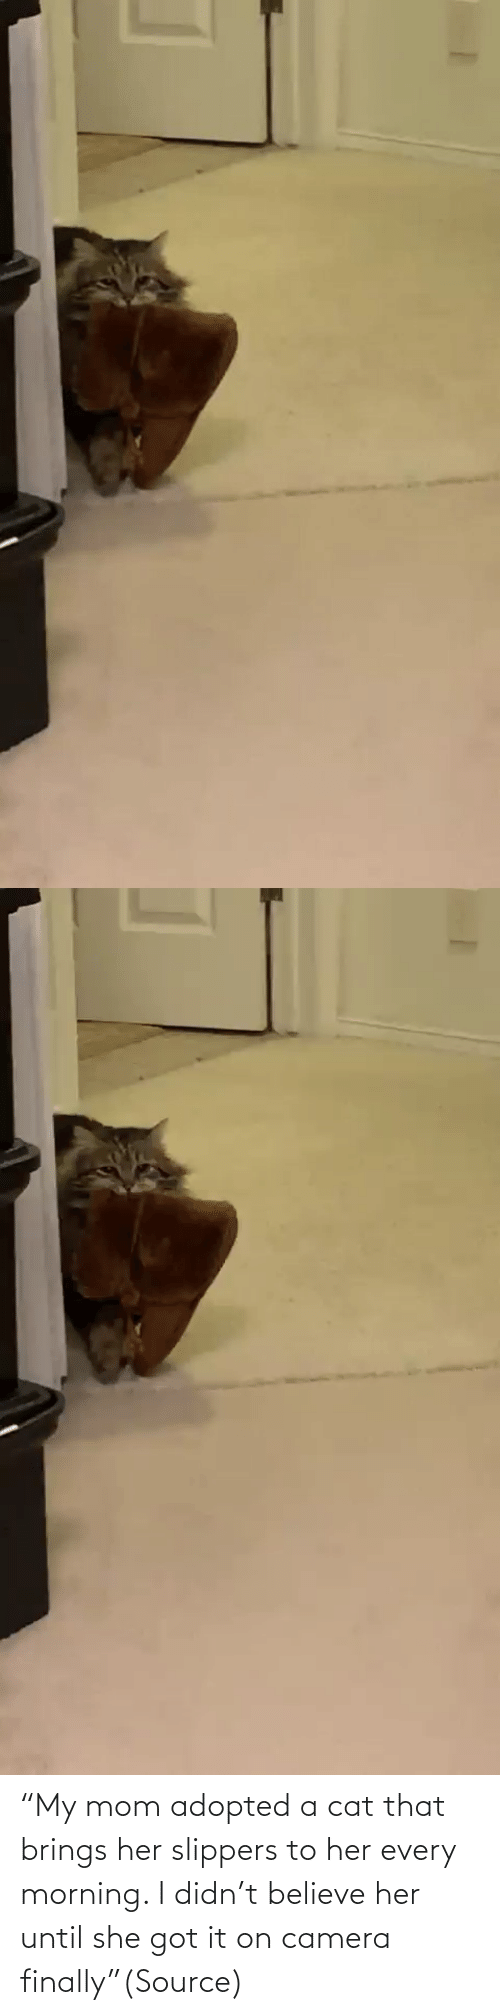 "Until: ""My mom adopted a cat that brings her slippers to her every morning. I didn't believe her until she got it on camera finally""(Source)"